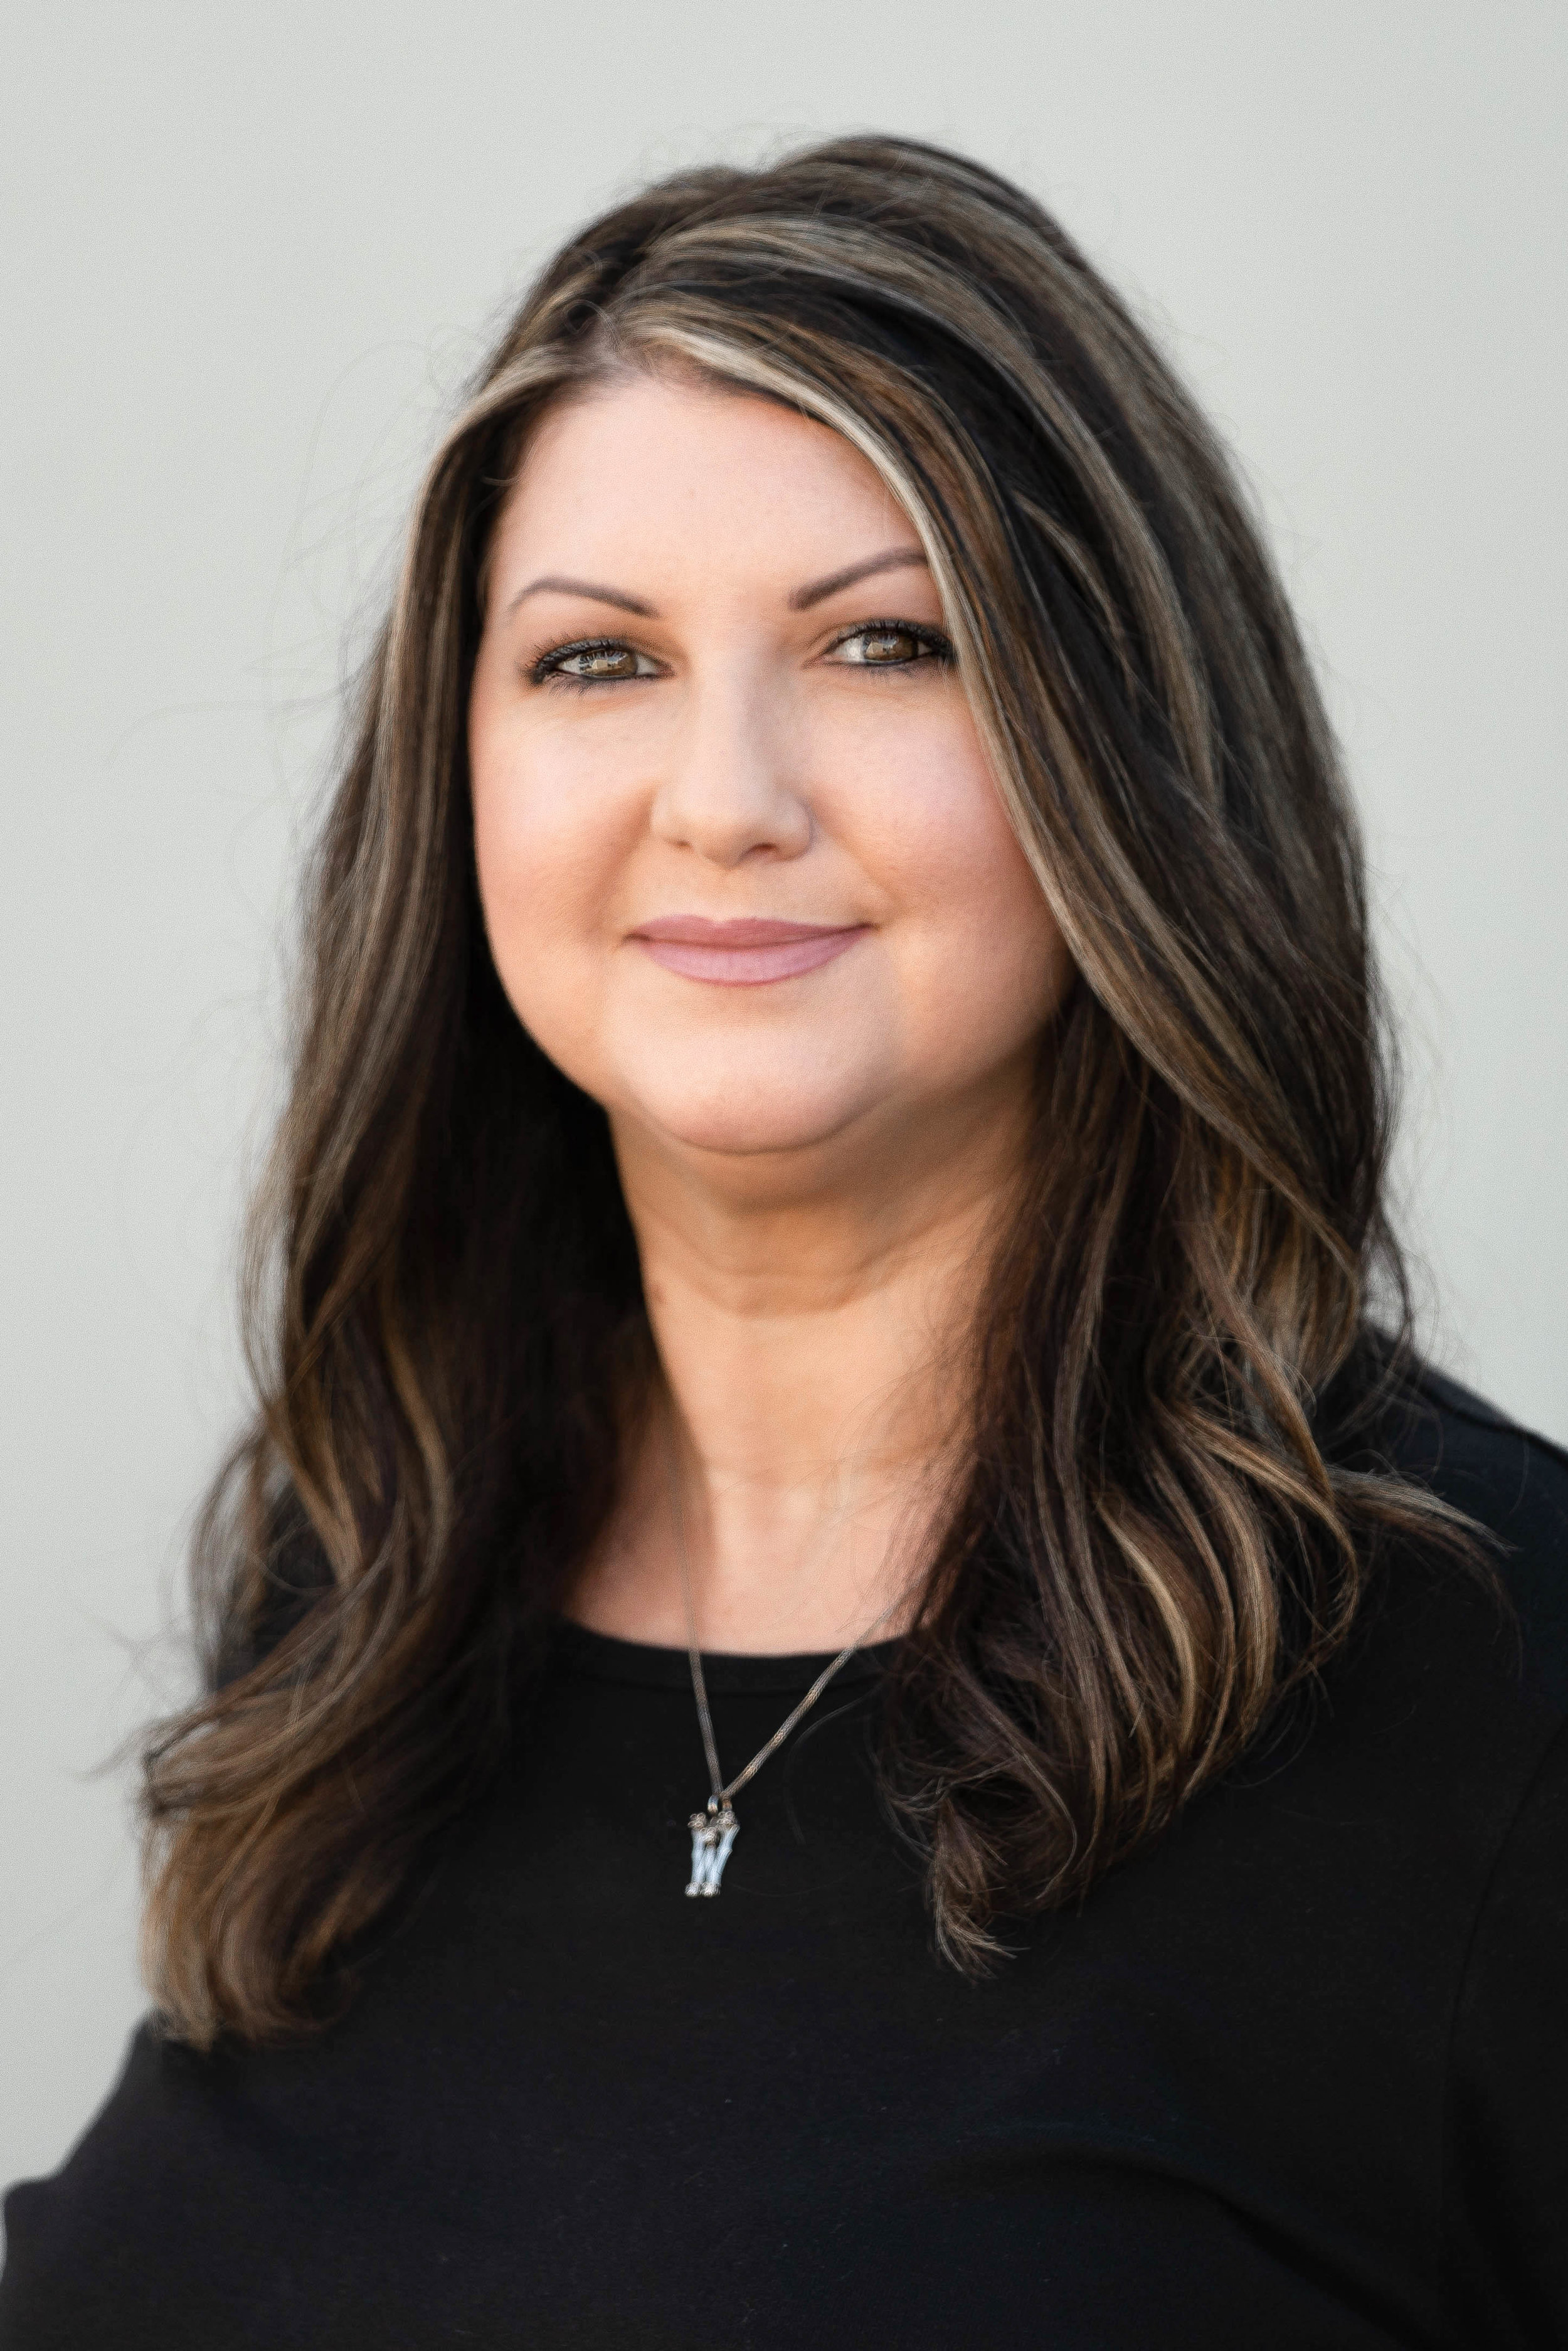 Tiffany Walthers - Office Manager916-245-4233 - Directtiffany@icongc.com